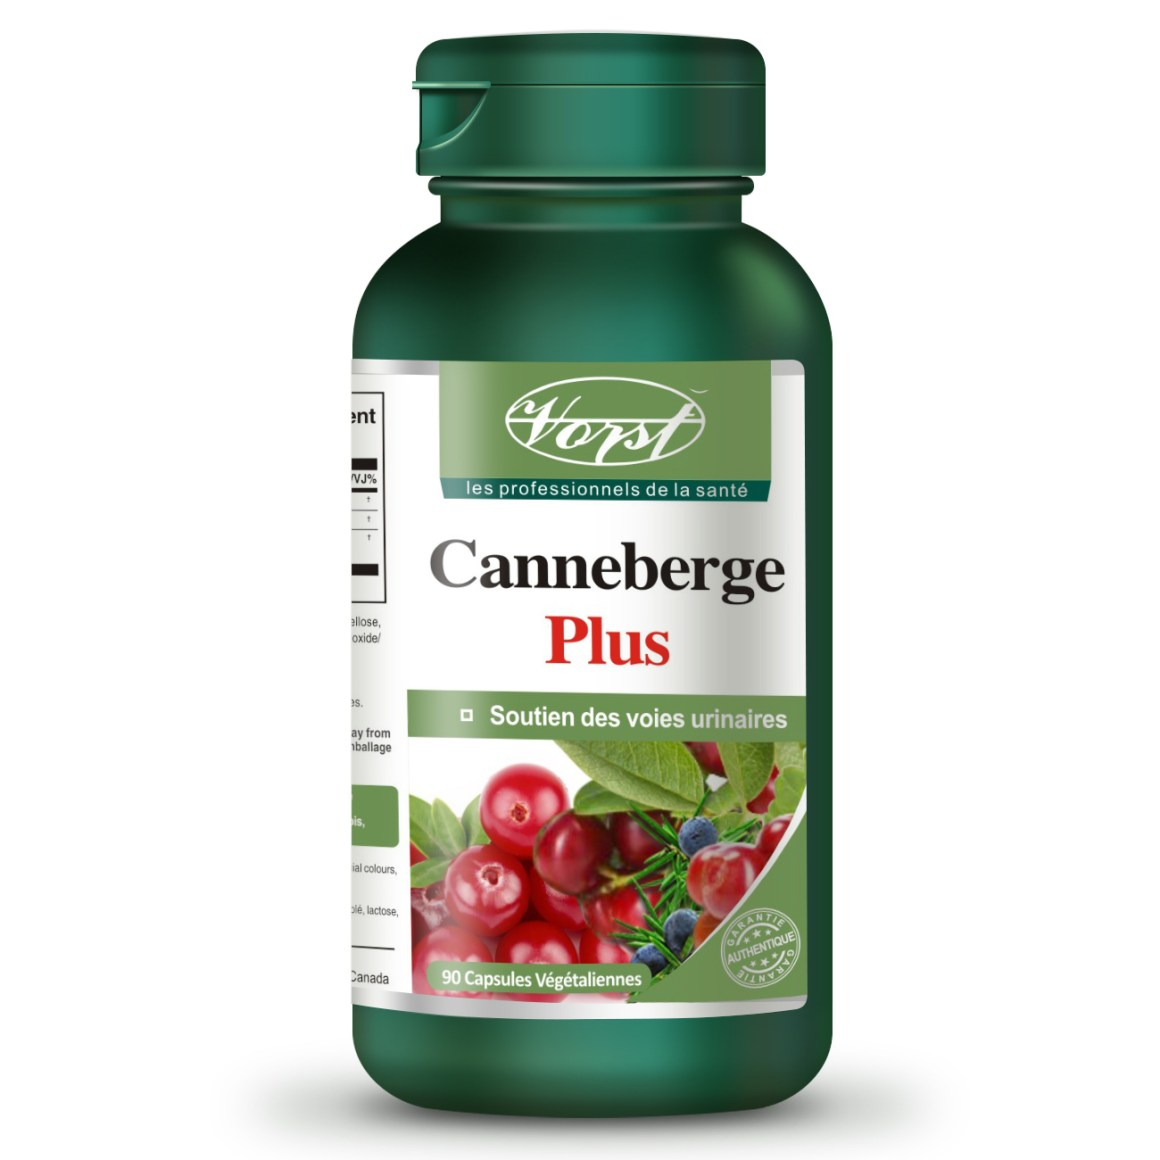 Cannerbege Plus